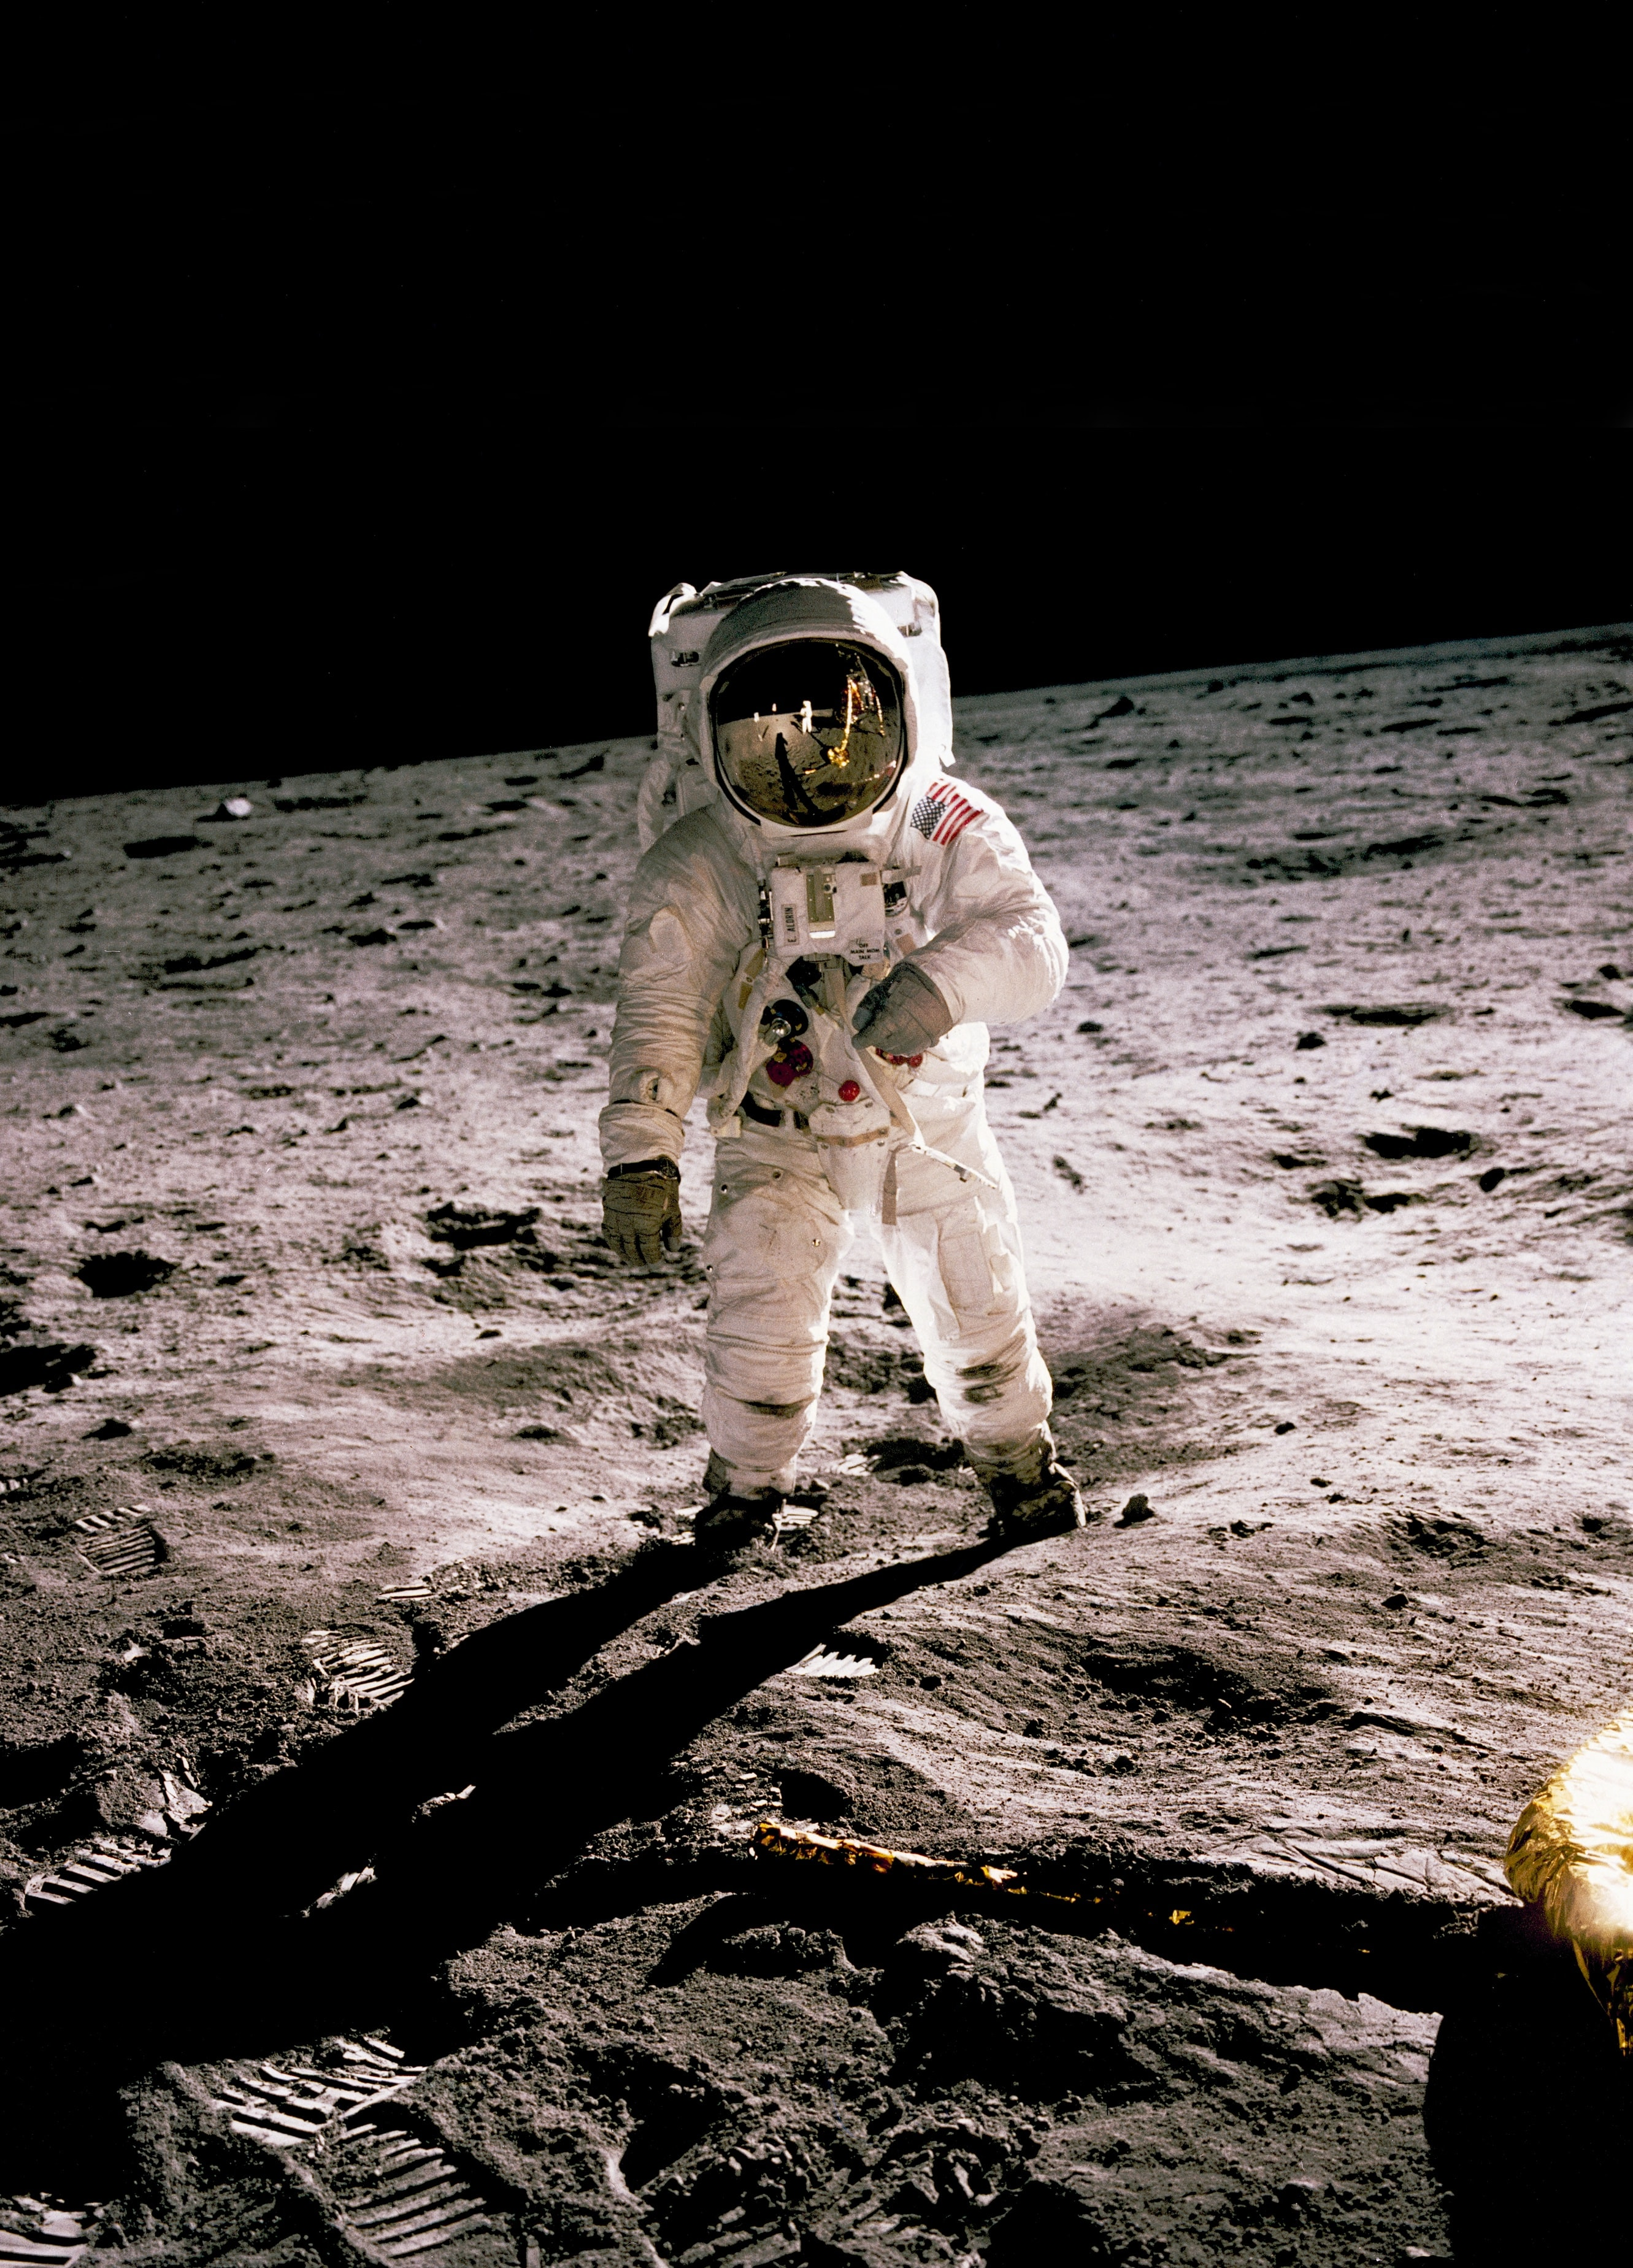 Apollo 11 Pictures Download Free Images On Unsplash